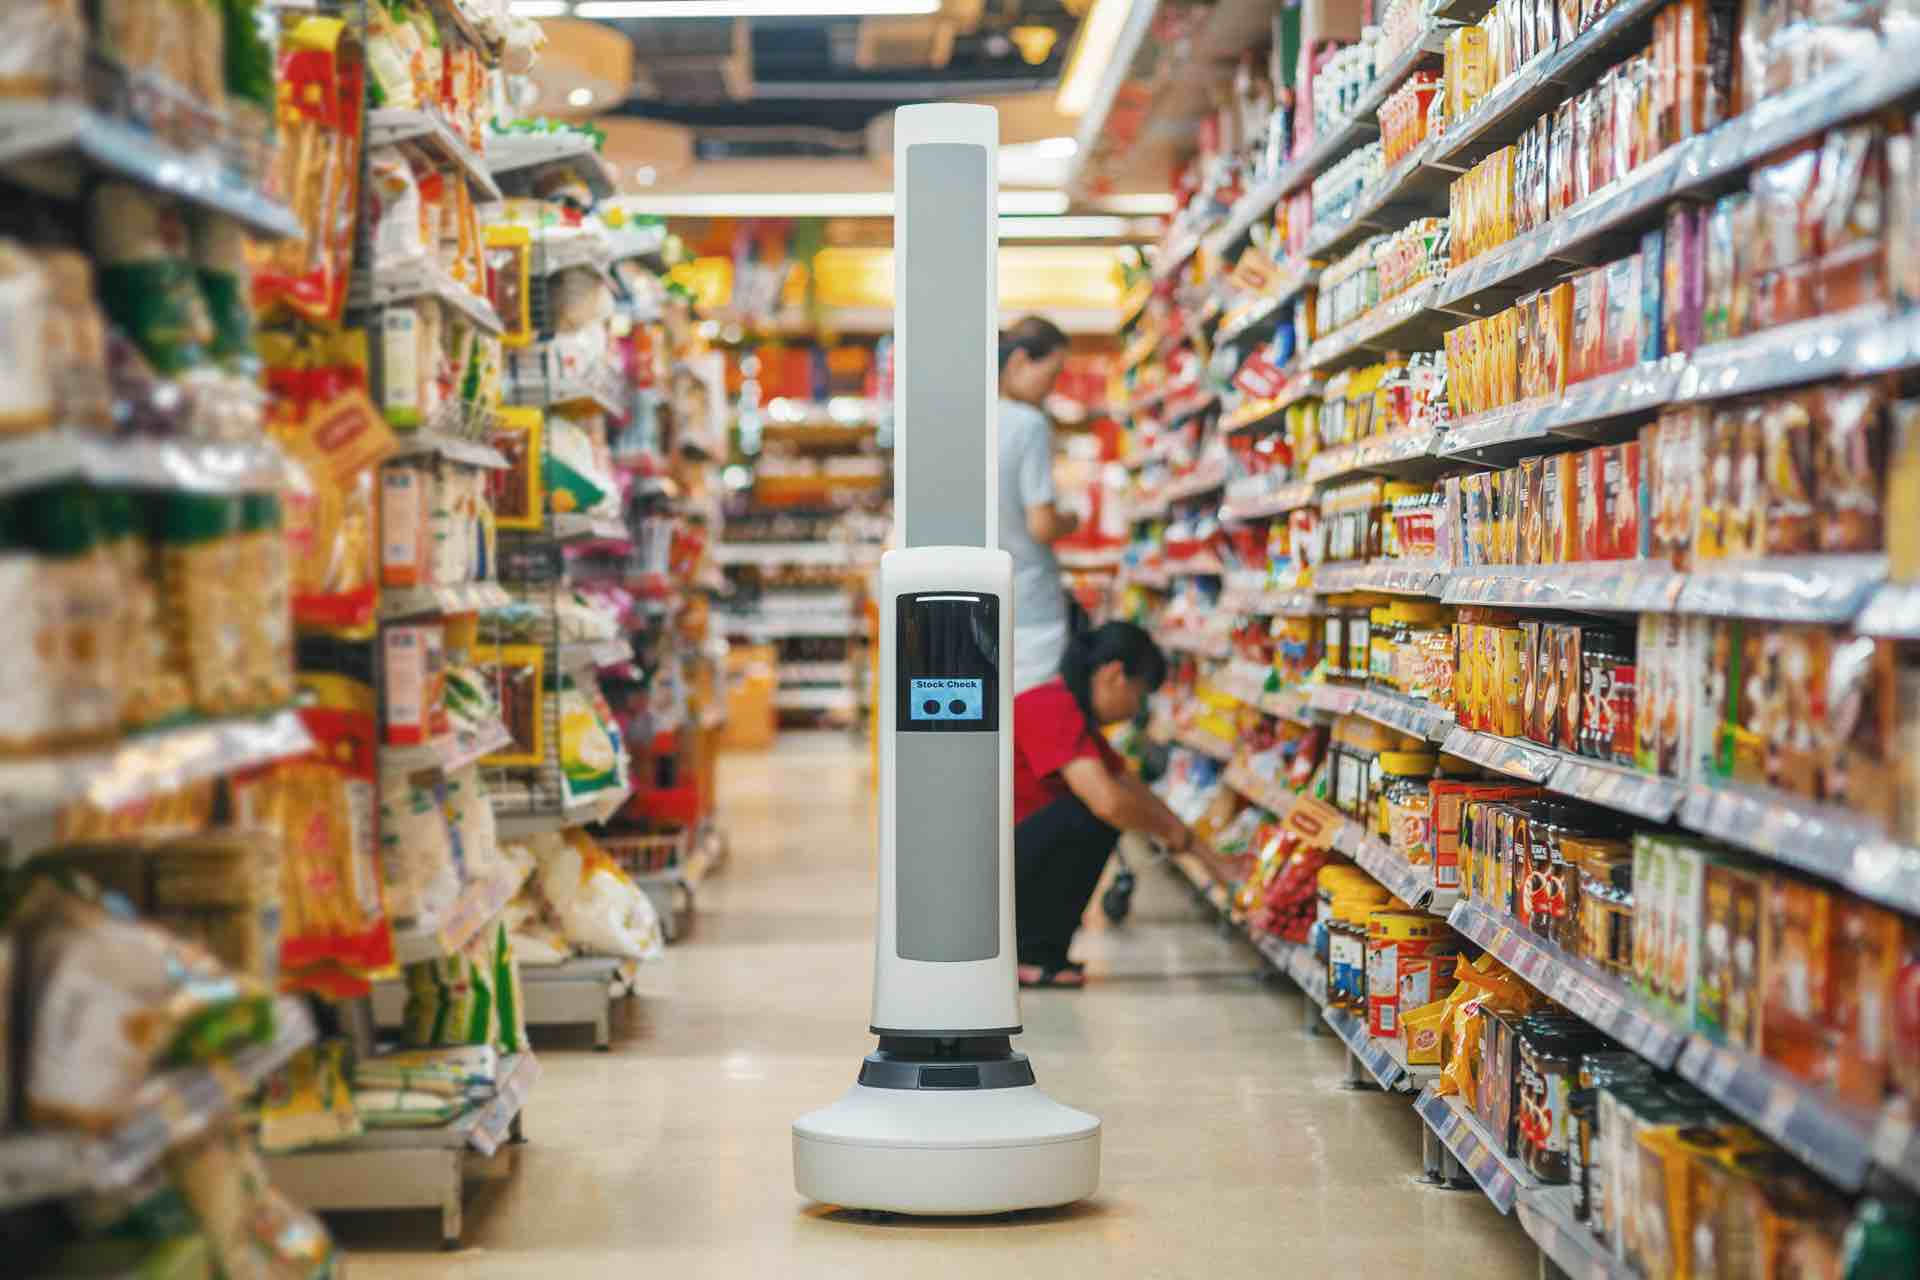 Intel wants to put robots in shops